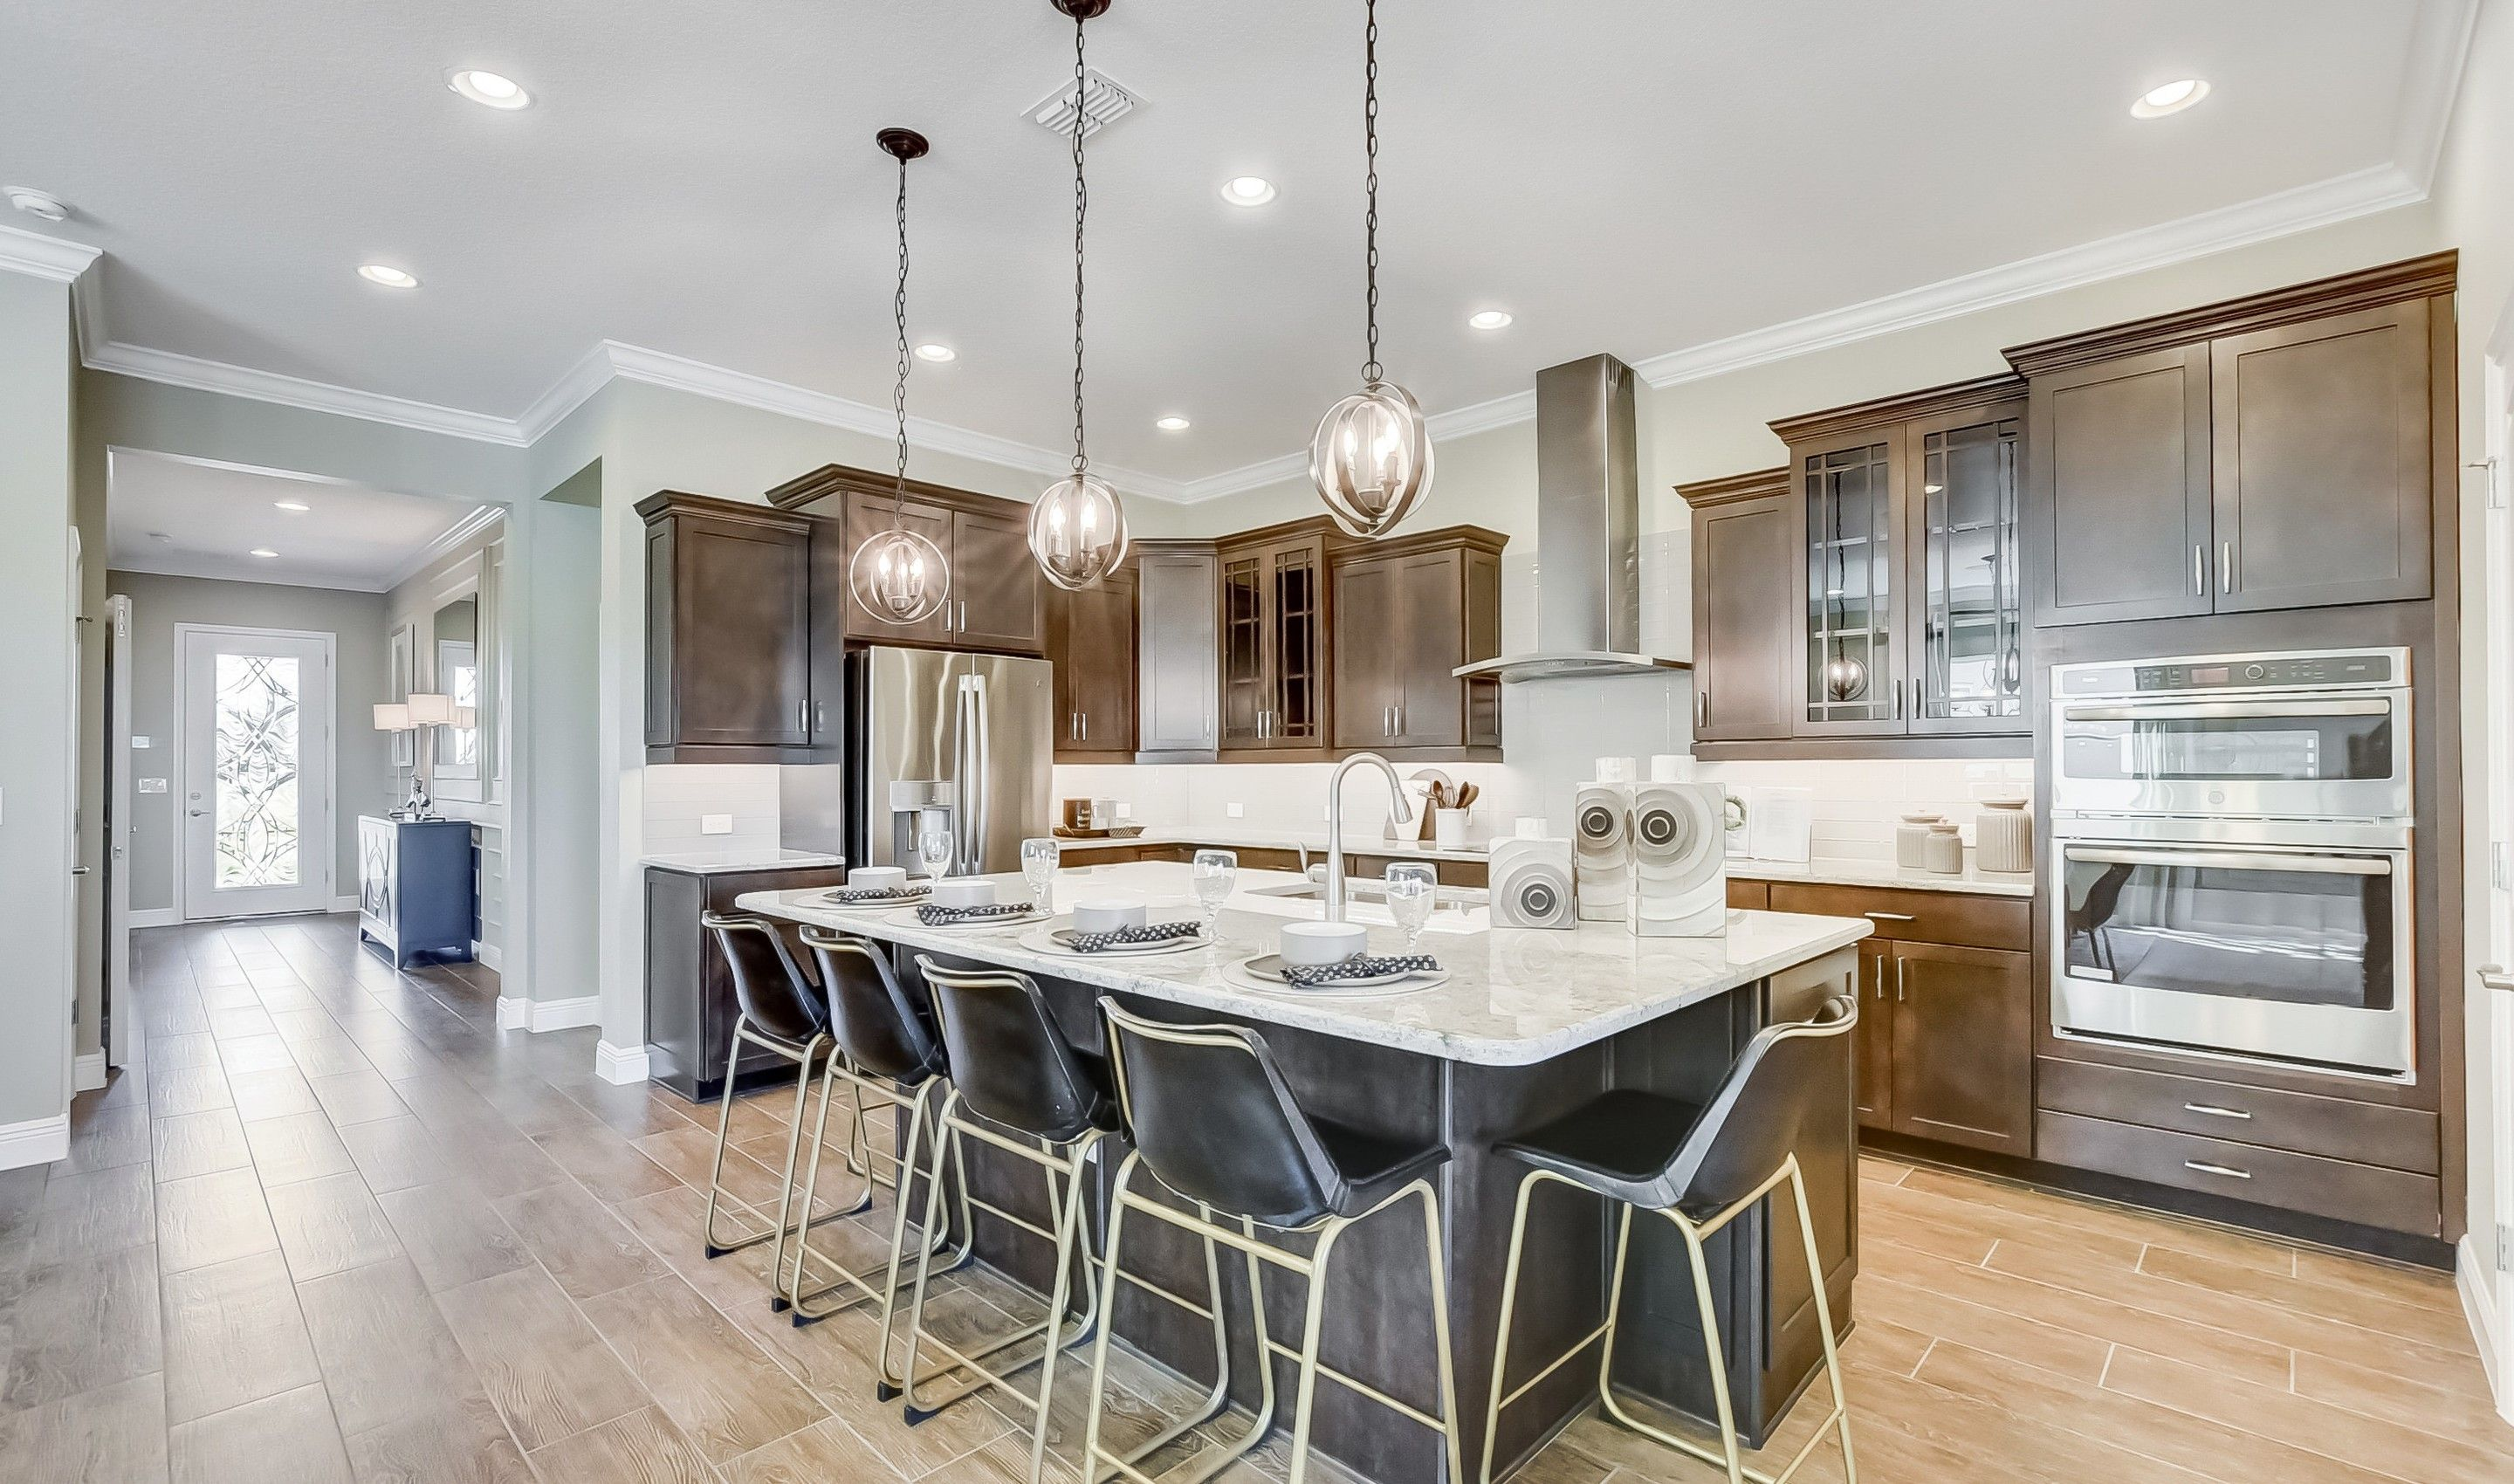 Kitchen featured in the Grayson By K. Hovnanian® Homes in Orlando, FL